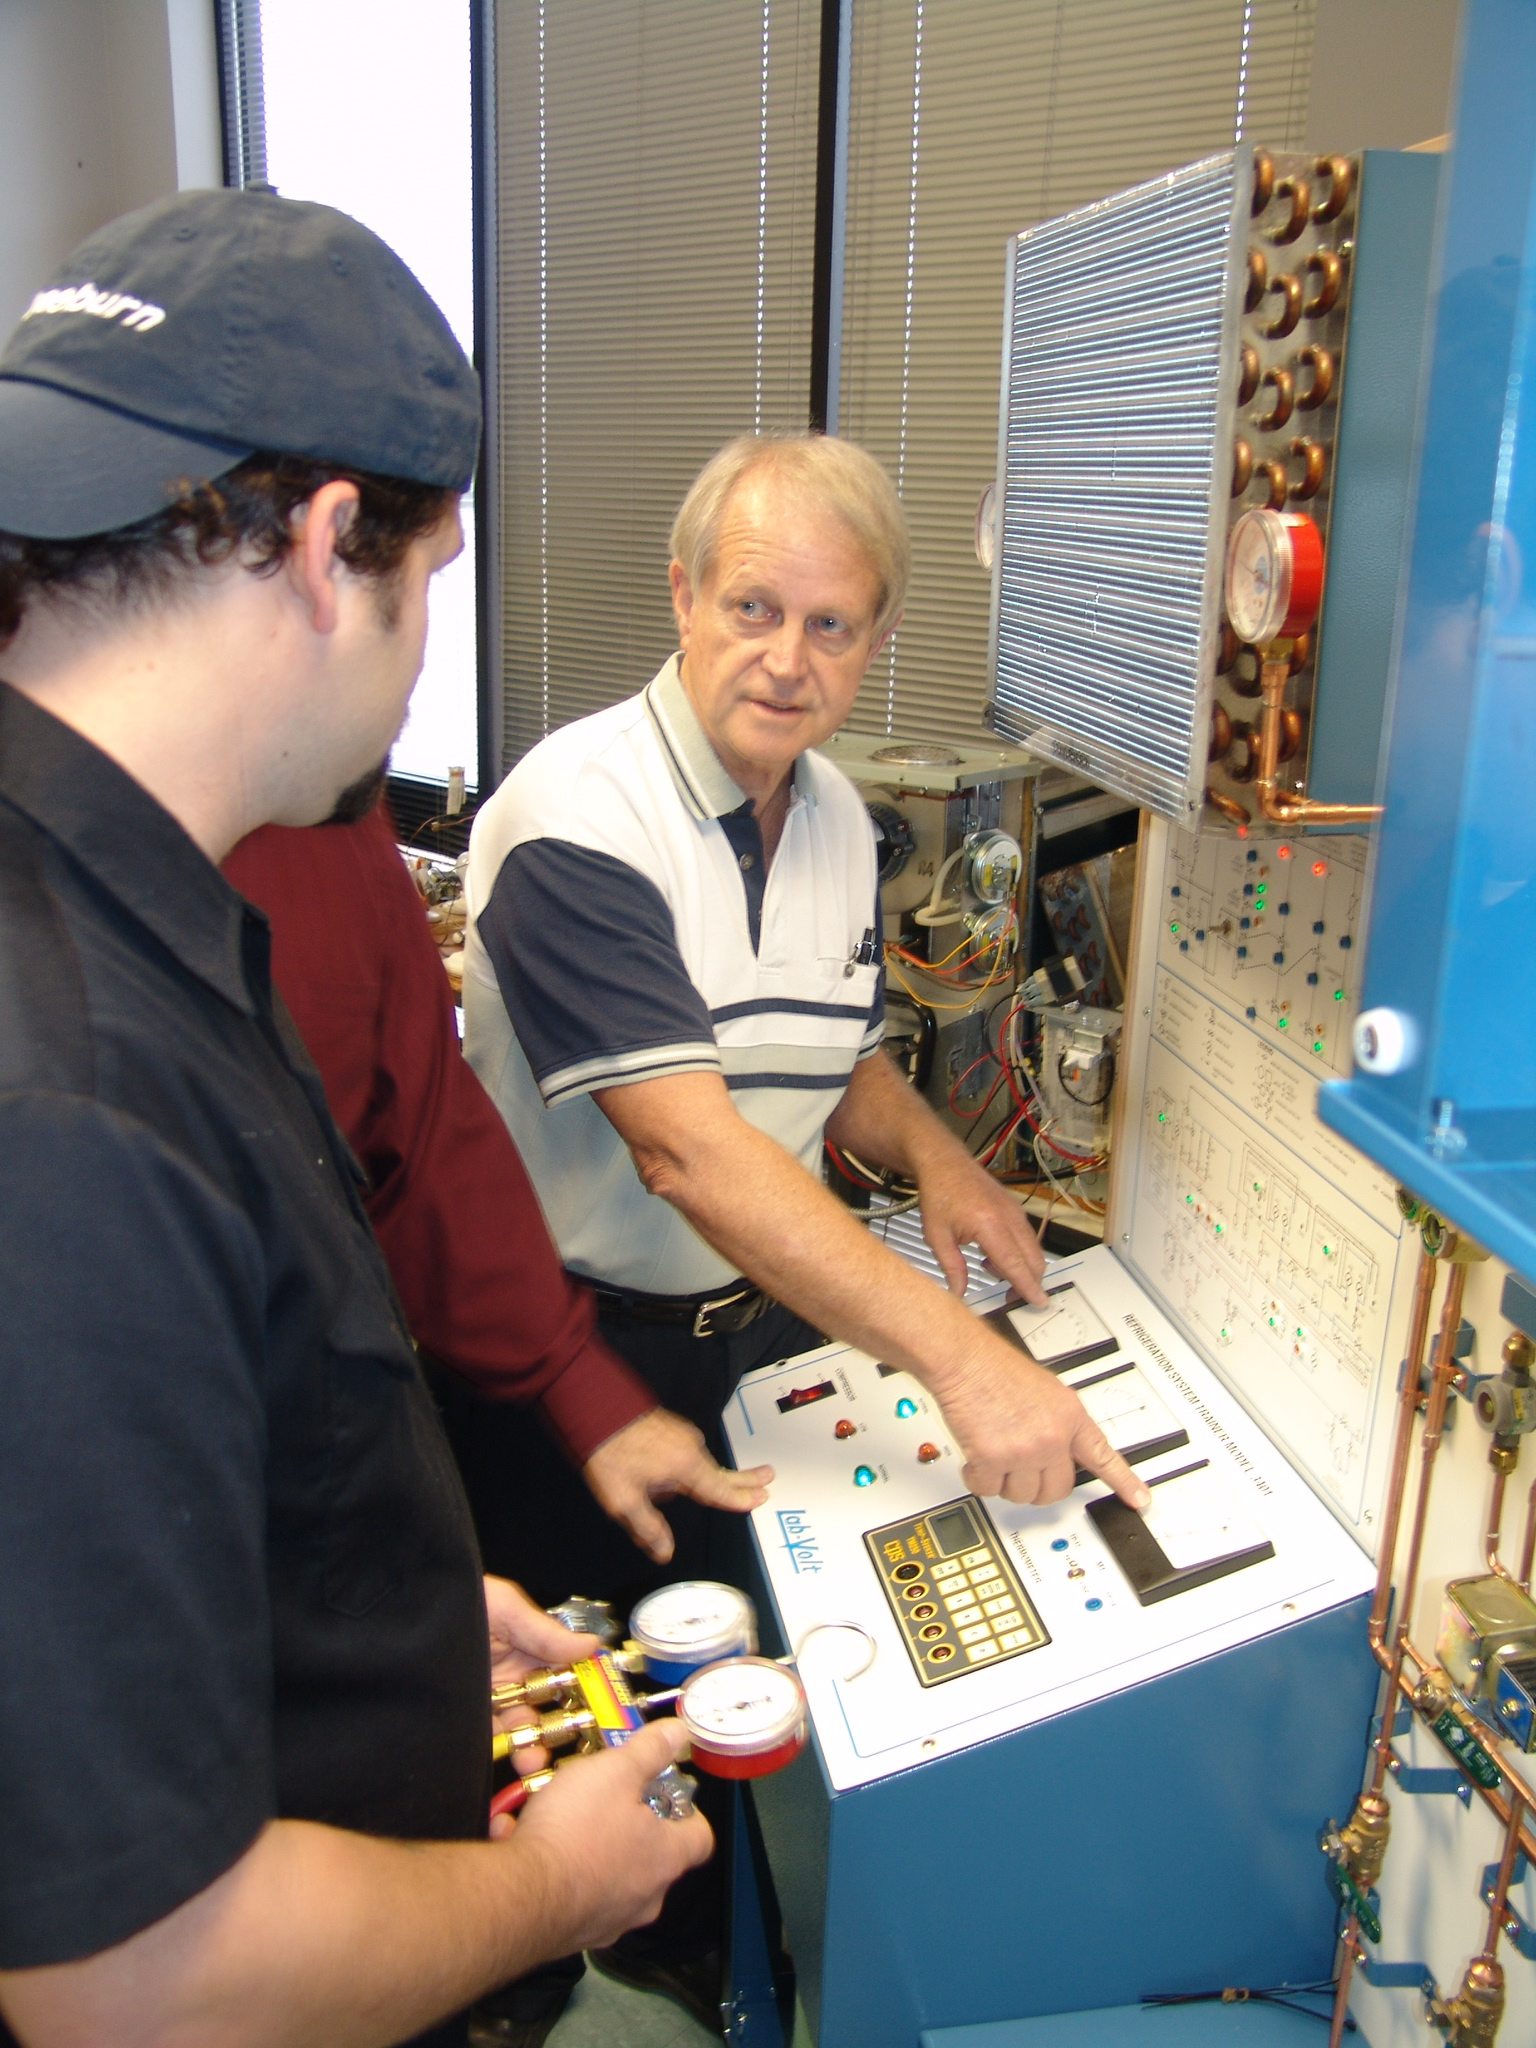 Instructor Robert Watts shows his students some of the technical aspects of testing a cooling system.